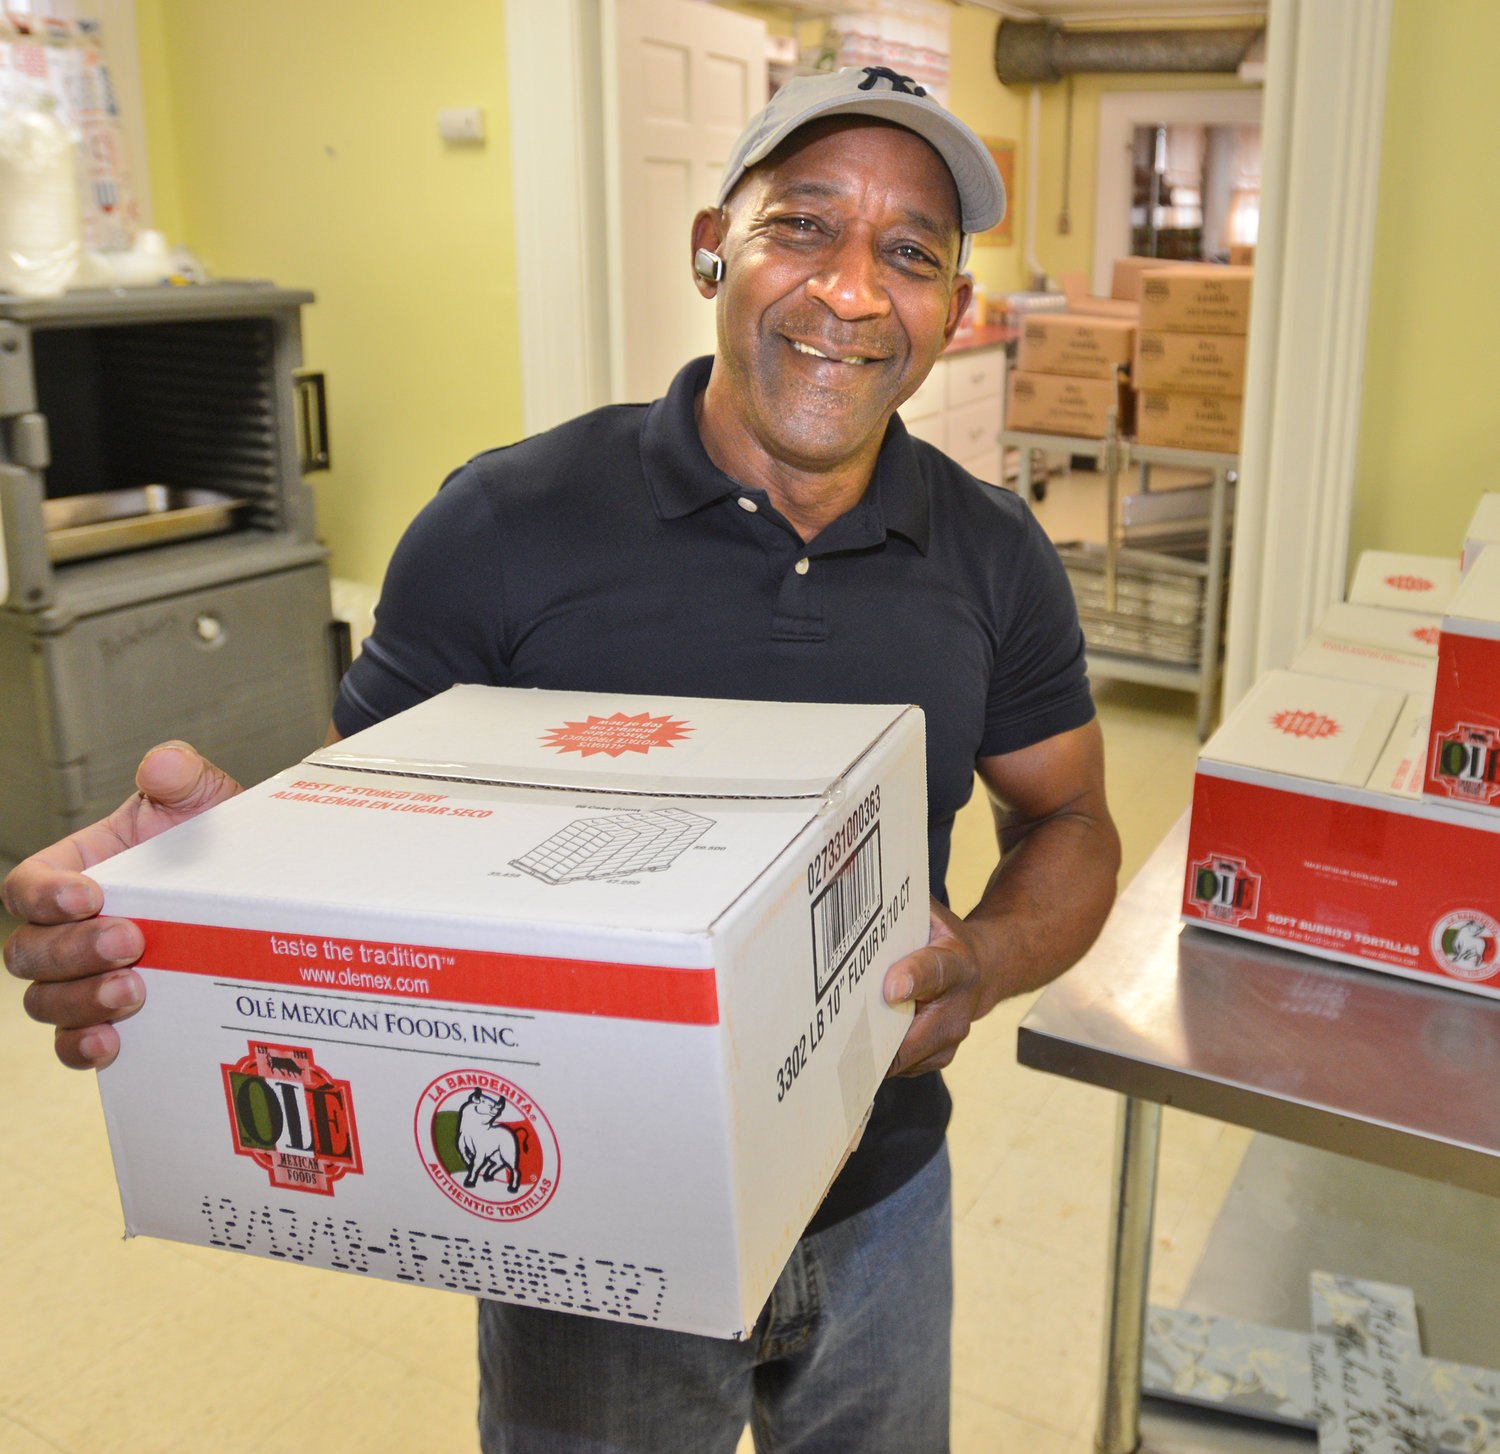 DOING GOD'S WORK — The Rev. Arthur F. Atkins Sr., pastor of Rome Wesleyan Church, moves boxes of perishables at the church's ministry, Bread of Life Community Center, located at 401 N. Washington St.  The center is in need of volunteers to help greet visitors, serve meals and deliver them, as well as monetary donations to expand its services to those in need.